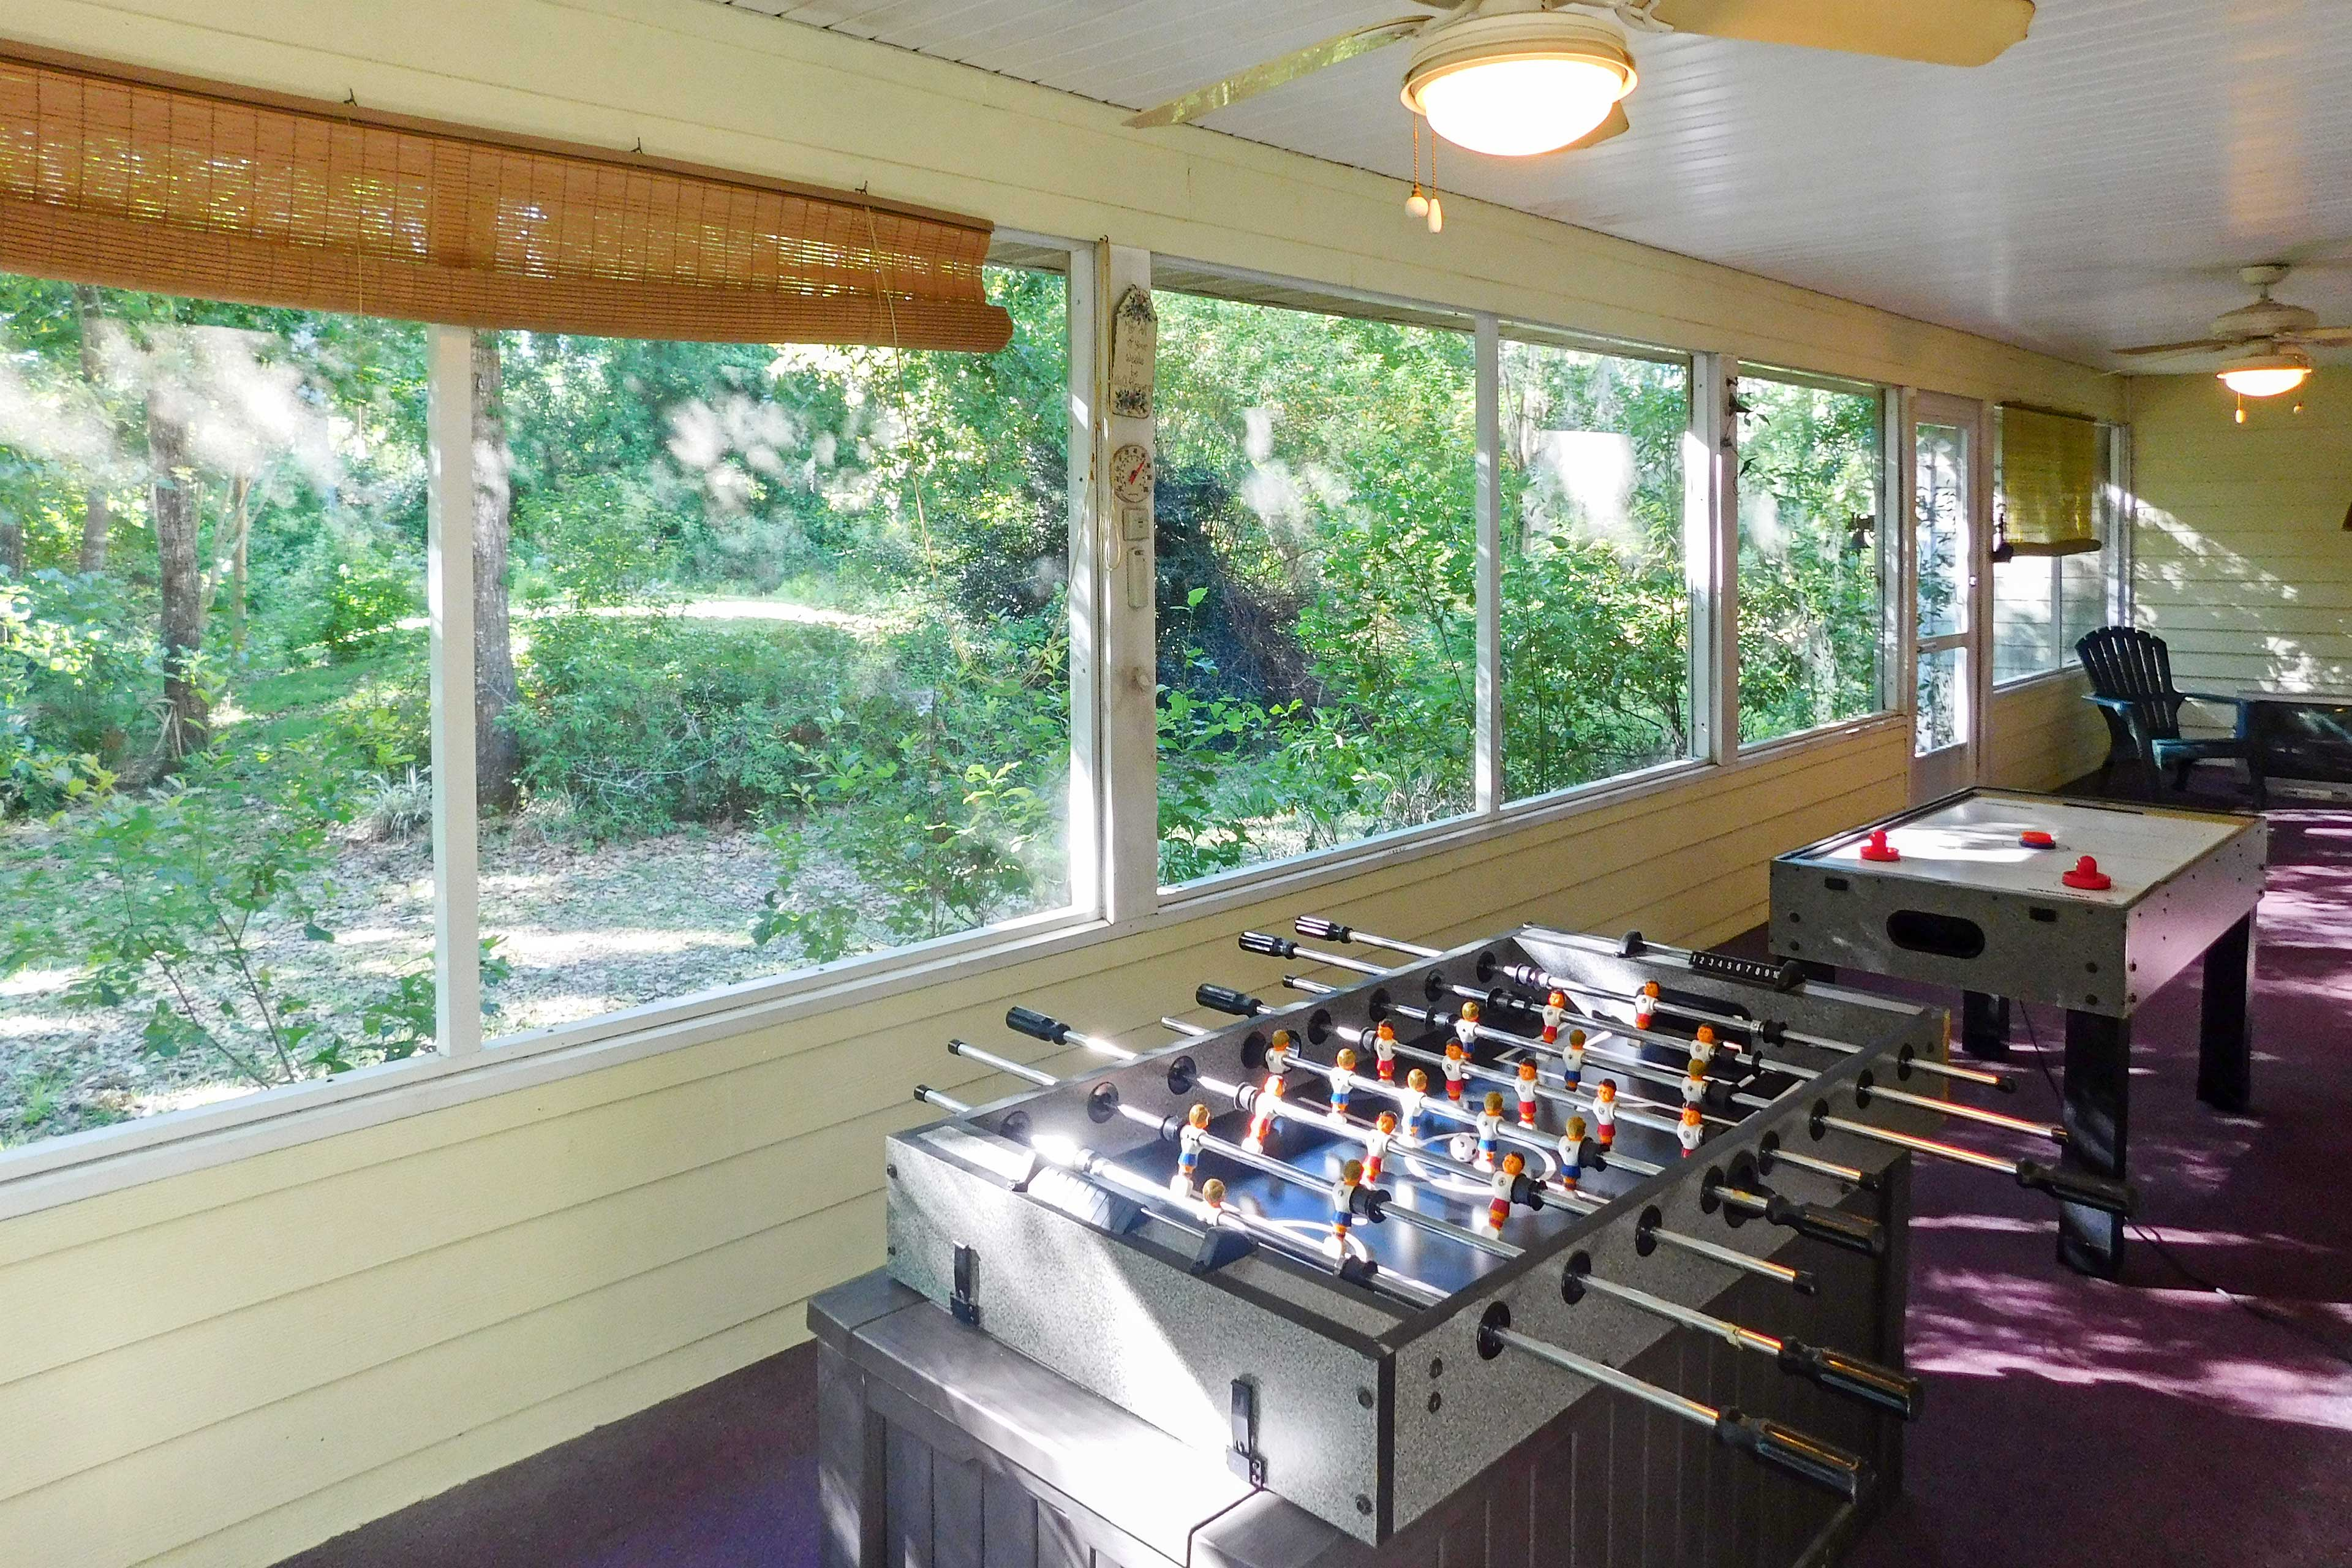 The enclosed back porch is perfect for a late movie or game night.